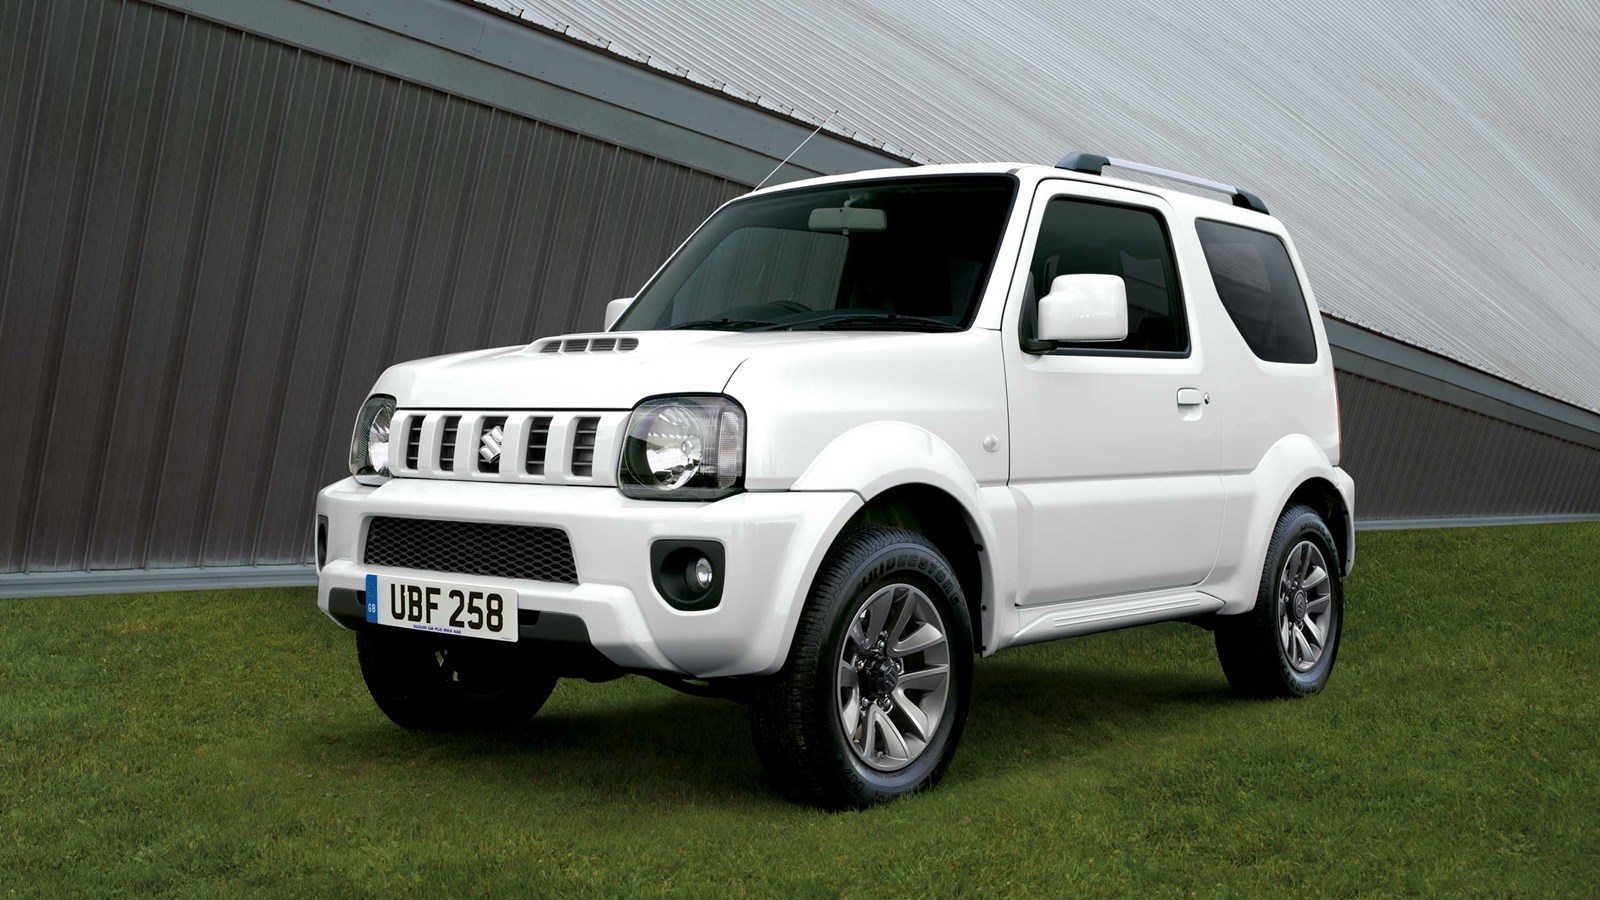 2017 suzuki jimny m t price in uae specs review in. Black Bedroom Furniture Sets. Home Design Ideas